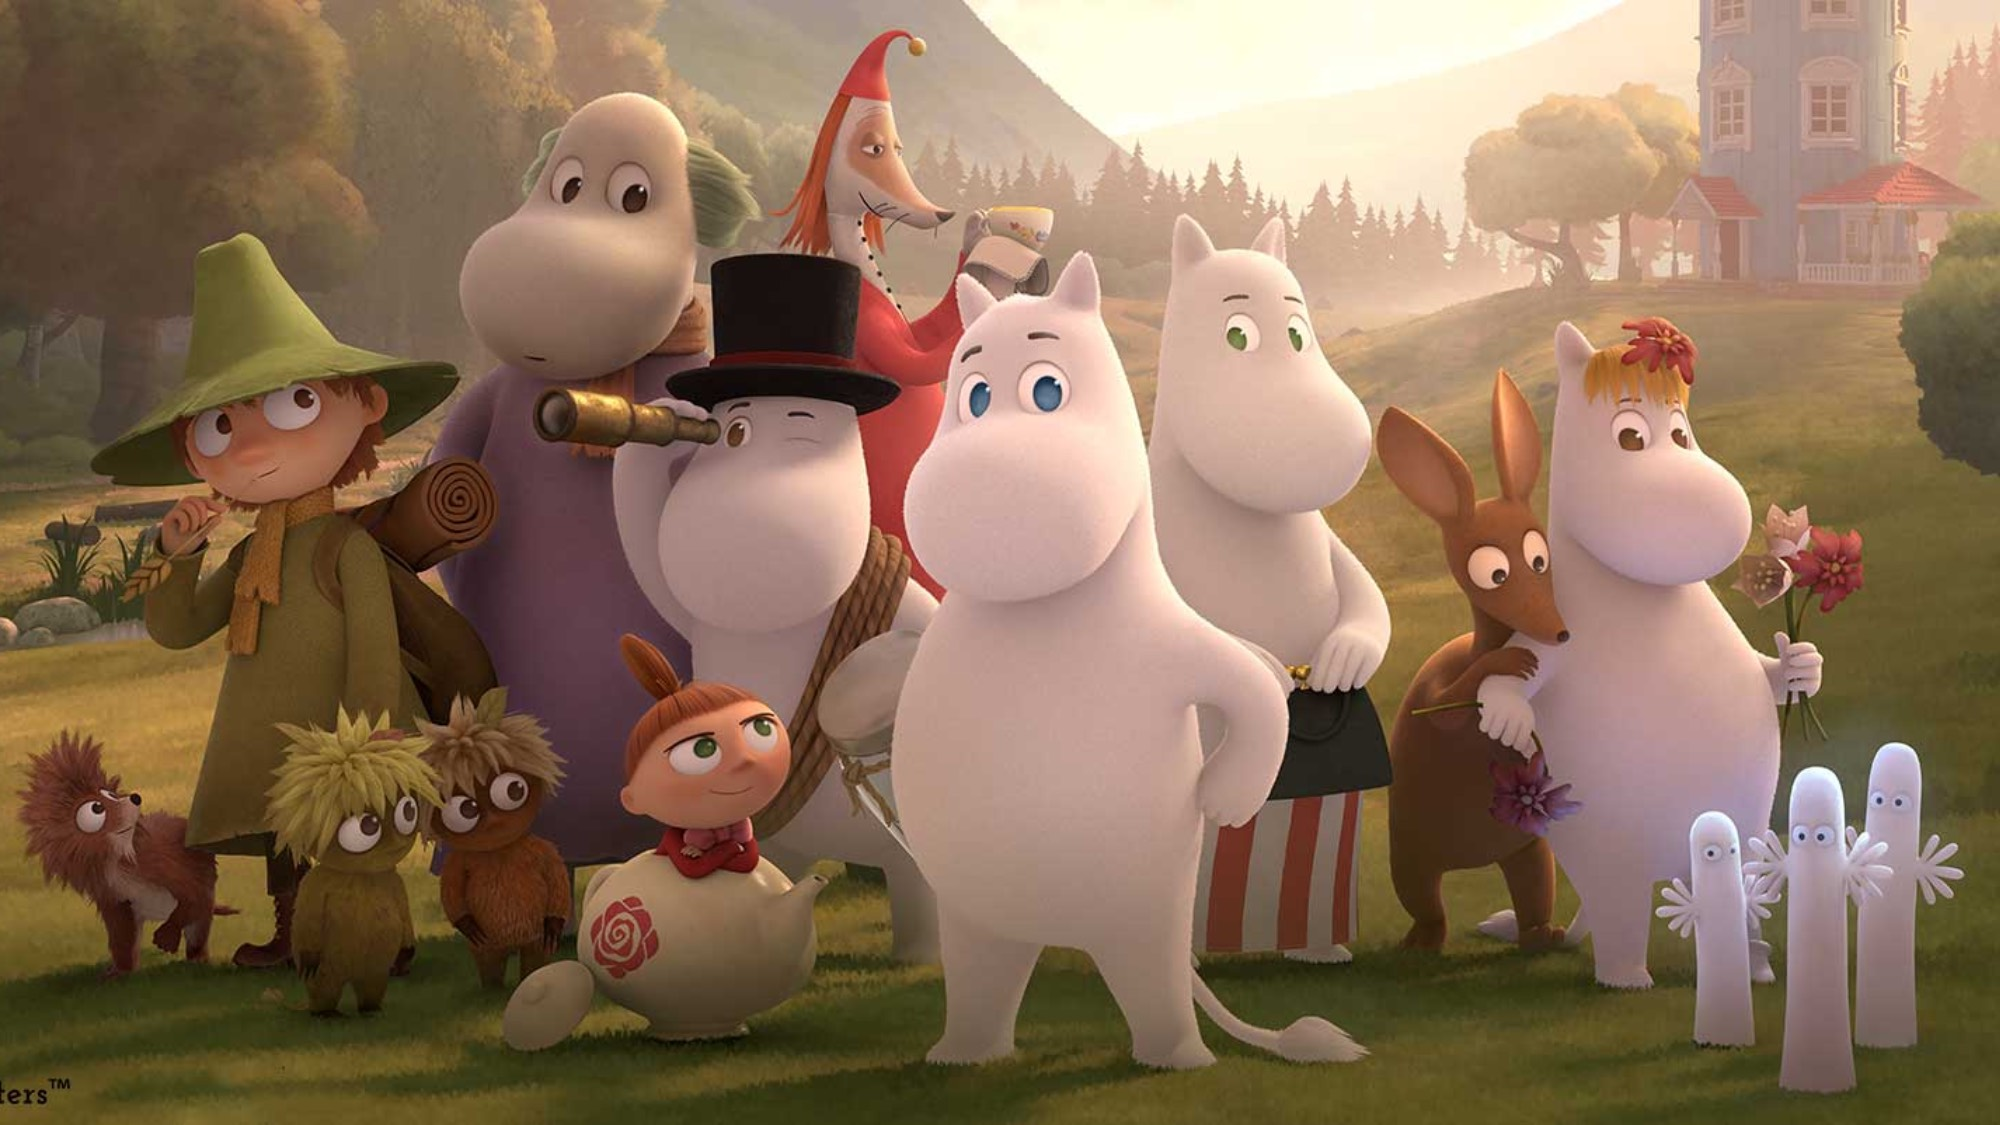 Moomin characters in the Moominvalley